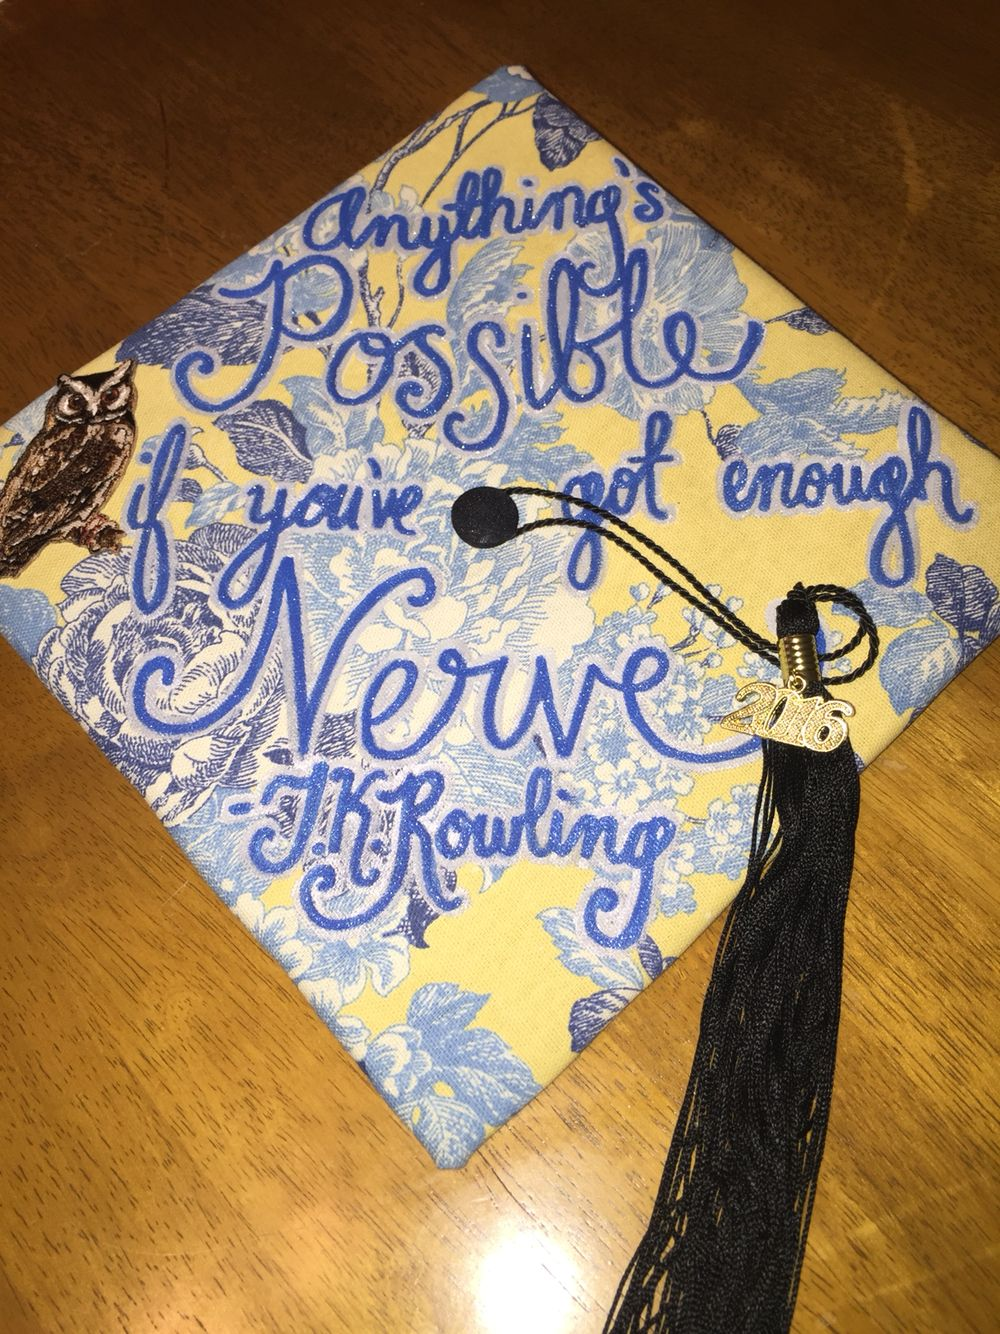 Harry Potter Graduation Cap Love Quotes From J K Rowling Harry Potter Graduation Cap Harry Potter Graduation Graduation Cap Decoration